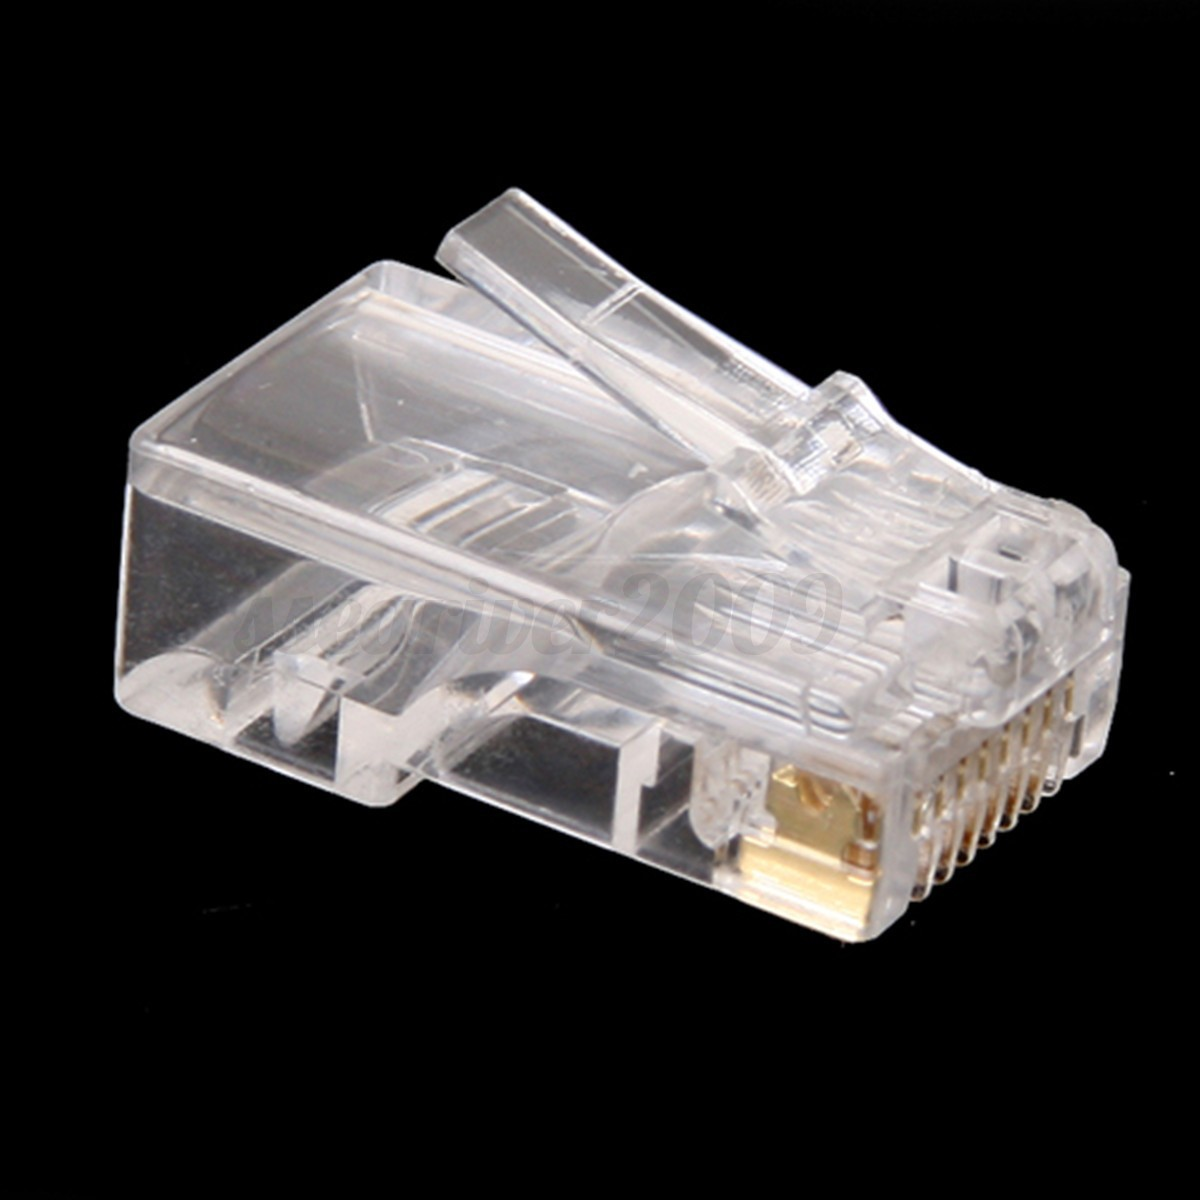 Cable End Connectors : Pcs rj network ethernet cable modular plug cat